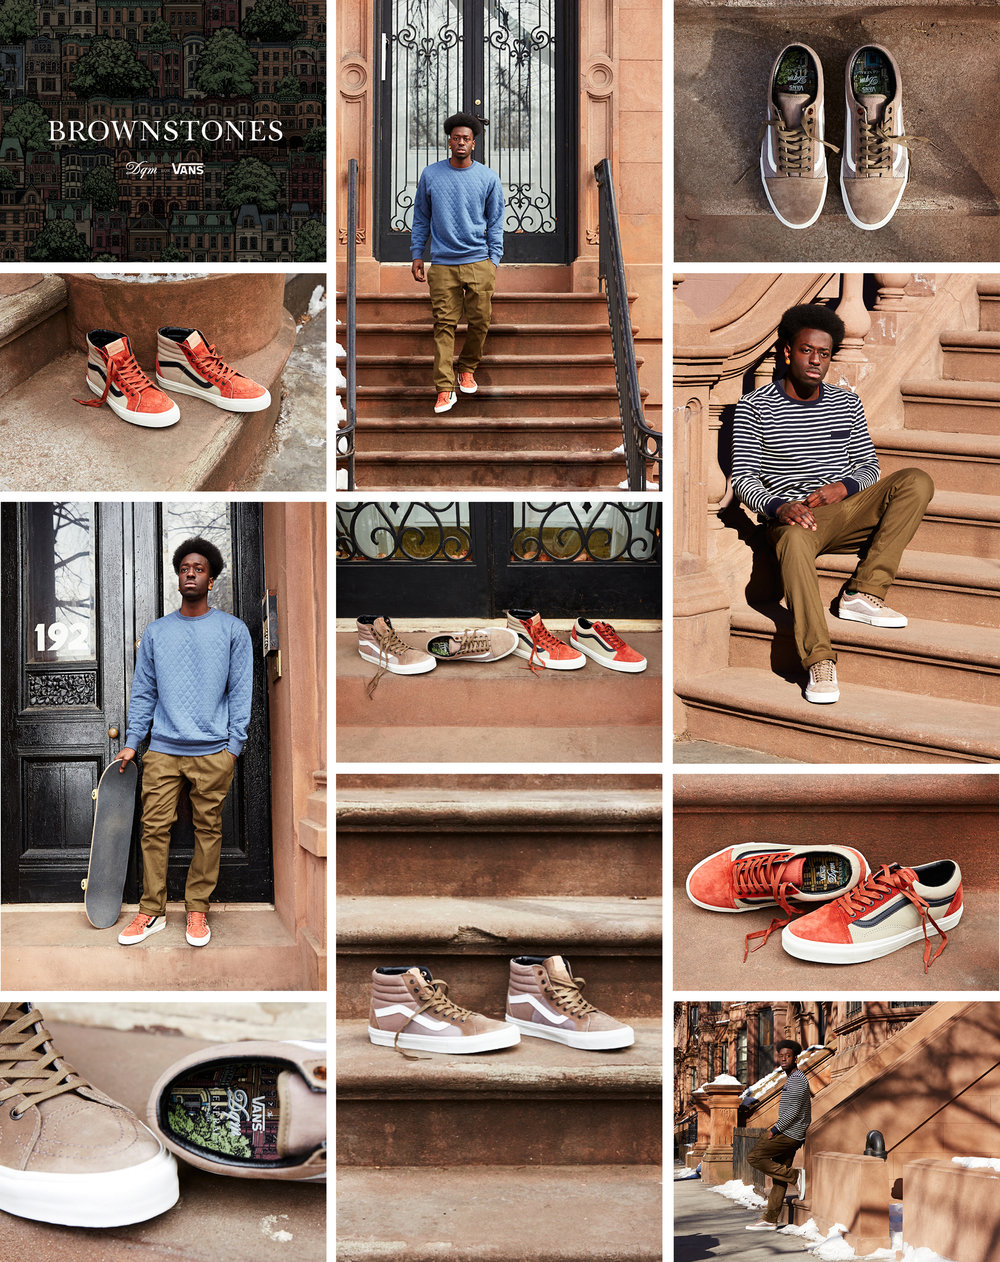 The shoes are inspired by the brownstone row houses of New York and the North East. Drawing from the natural shades of the Jurassic sandstone material, the collection includes four styles: a Sk8-Hi 46 LX and Old Skool LX in colorways of grays and red brick/ brown. Constructed in a combination of premium leather, suede, nubuck and canvas, the shoes feature riveted brass eyelets with single tortoise glass eyelet detail, waxed flat laces, gum outsole and The General's signature navy blue heel tab print. A custom, artist-commissioned illustration is printed on the insoles. Built for the East Coast's inclement weather, the shoes feature water-resistant Scotchgard™ weather protection treatment. Photography by Dominic Neitz in Fort Greene, Brooklyn, New York.